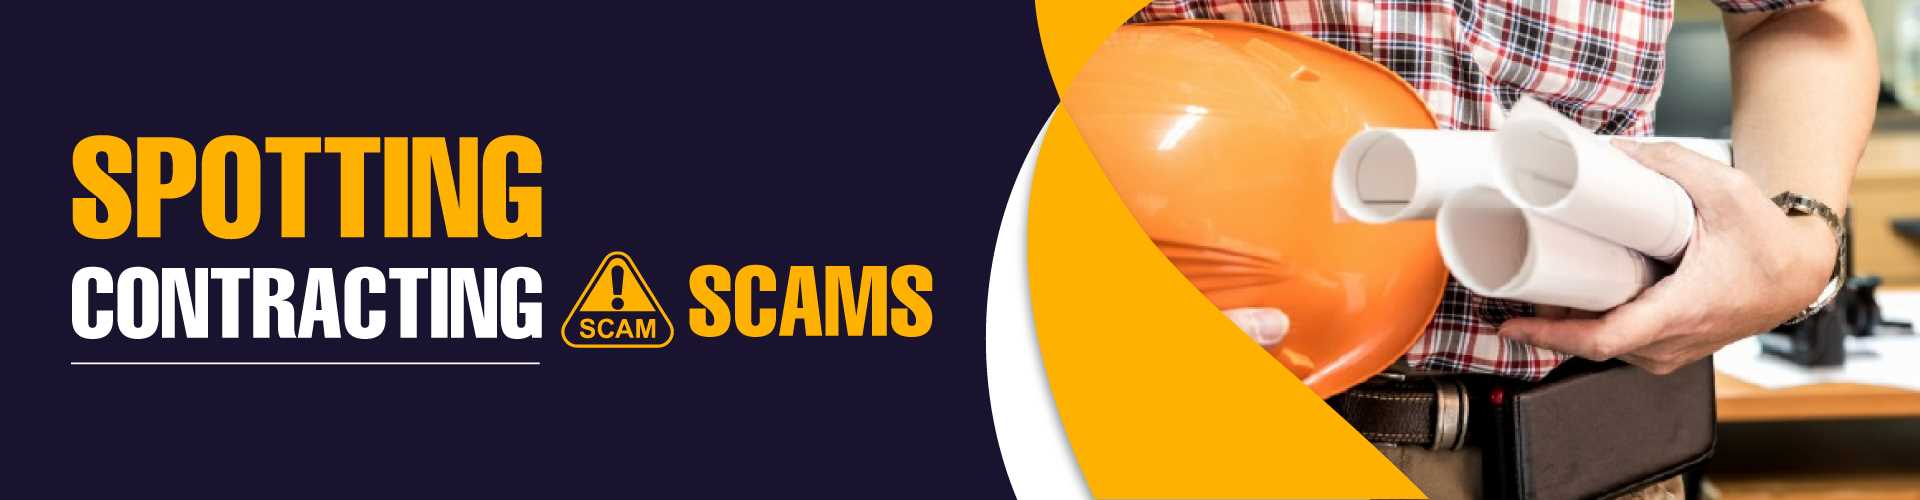 10 Contracting Scams